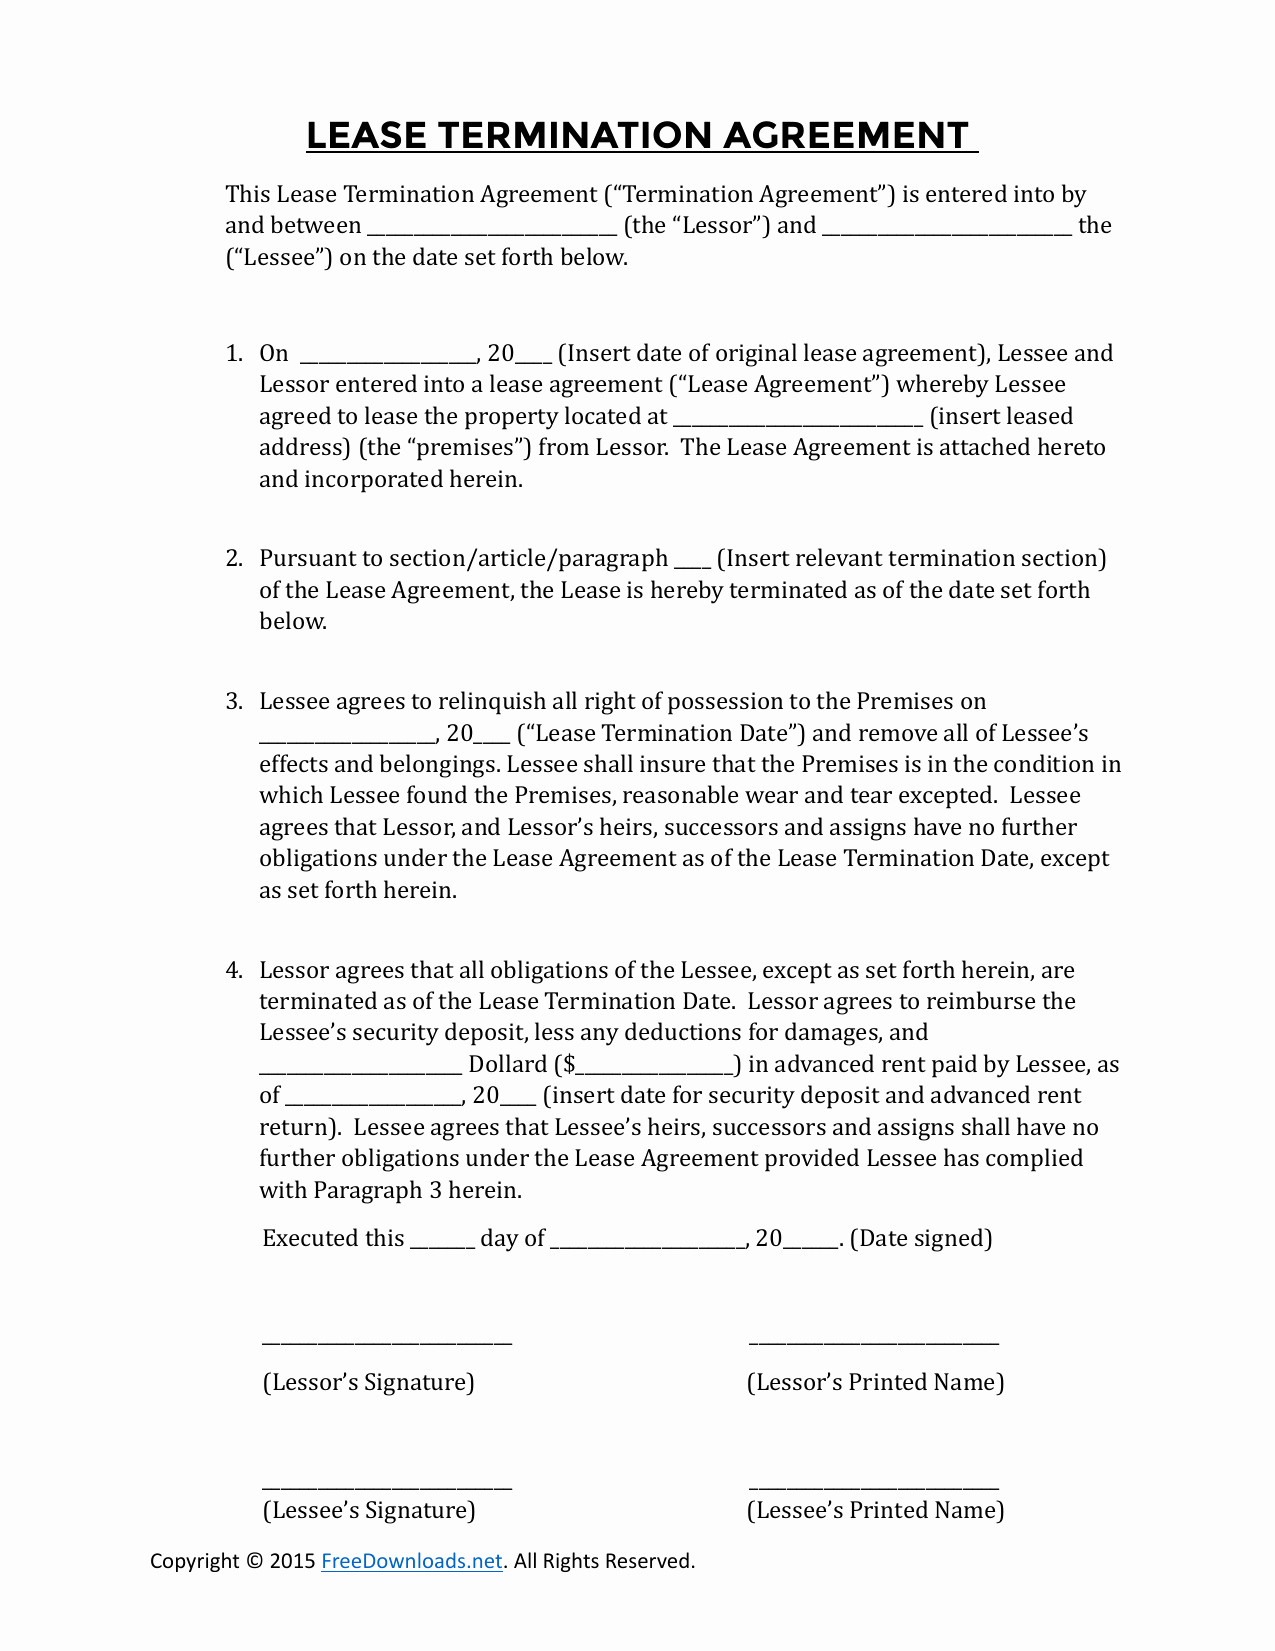 Lease Termination Agreement Template Free Luxury Download Early Residential Lease Termination Agreement